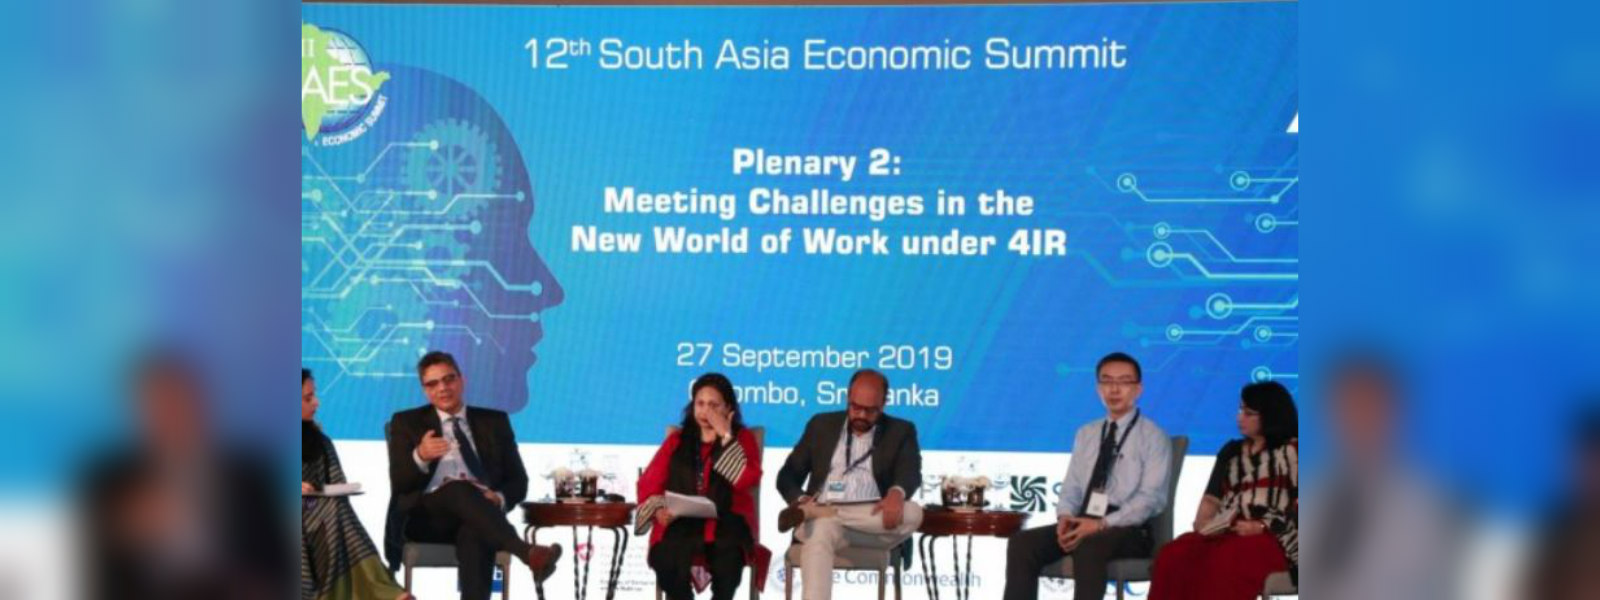 Meeting challenges in a new world of work: How prepared is South Asia for the Fourth Industrial Revolution?